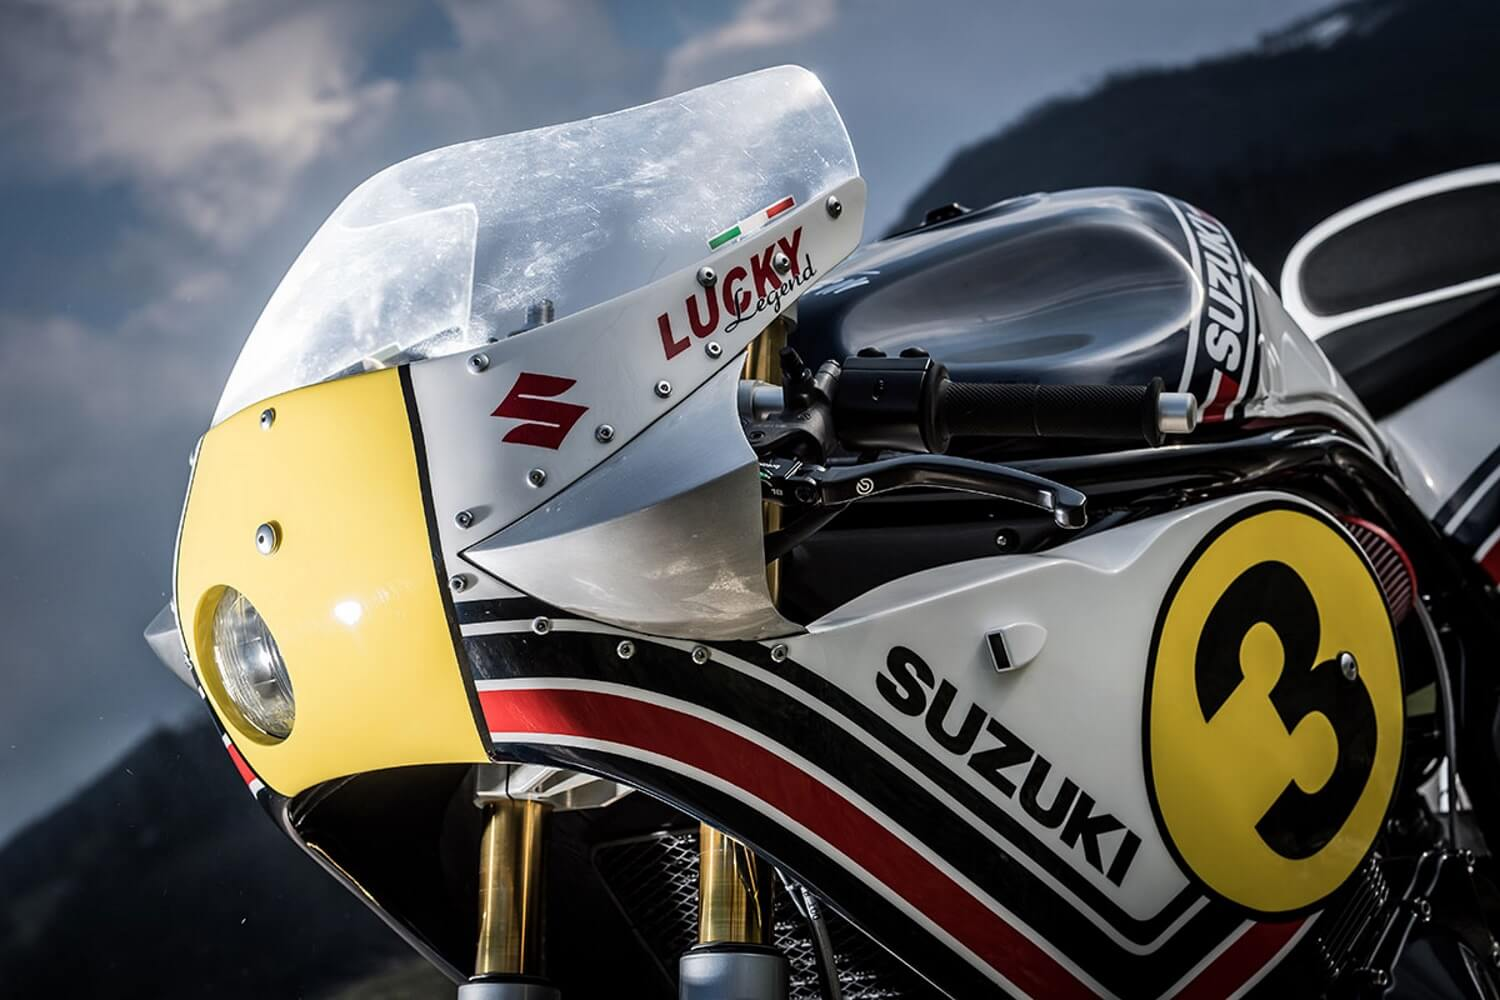 Suzuki Bandit 1200 Lucky Legend par Italian Dream Motorcycles